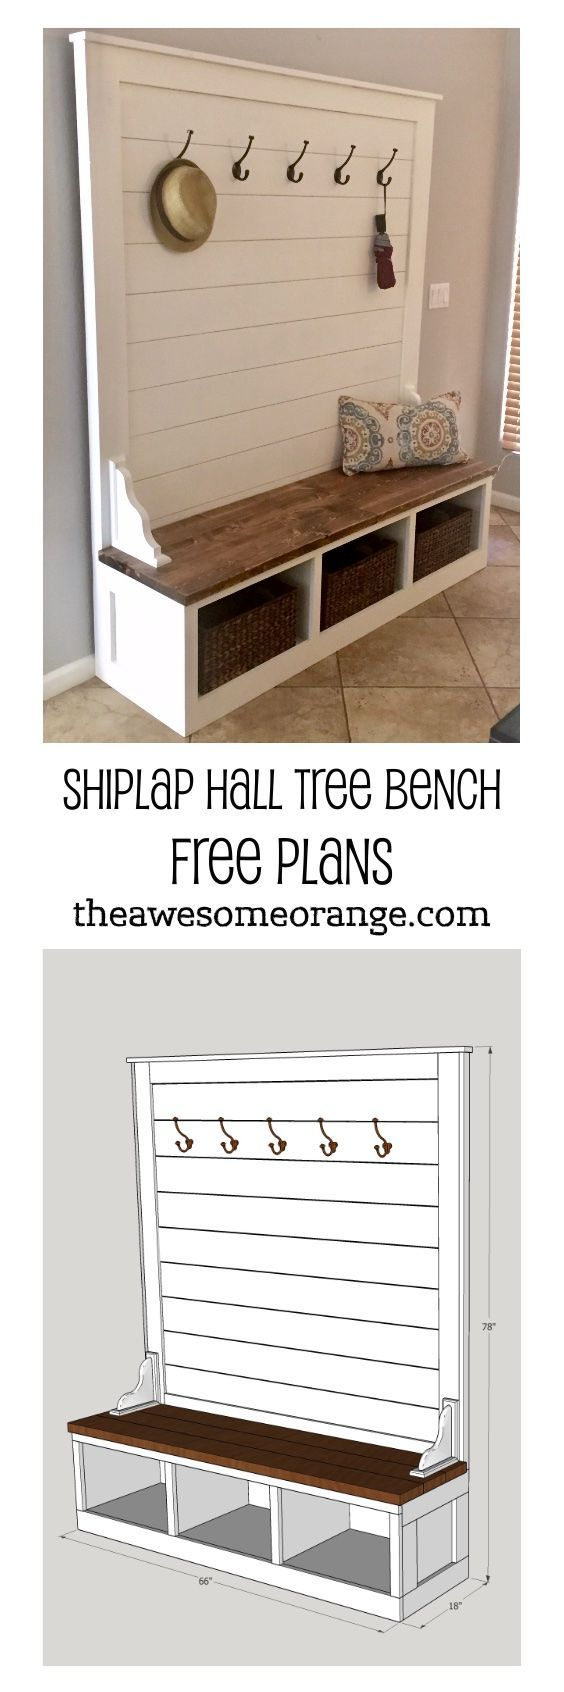 Free Plans From Www Theawesomeorange Com Shiplap Hall Tree Bench Diy Build Mudroom Bench Diy Storage Bench Hall Tree Bench Mud Room Storage